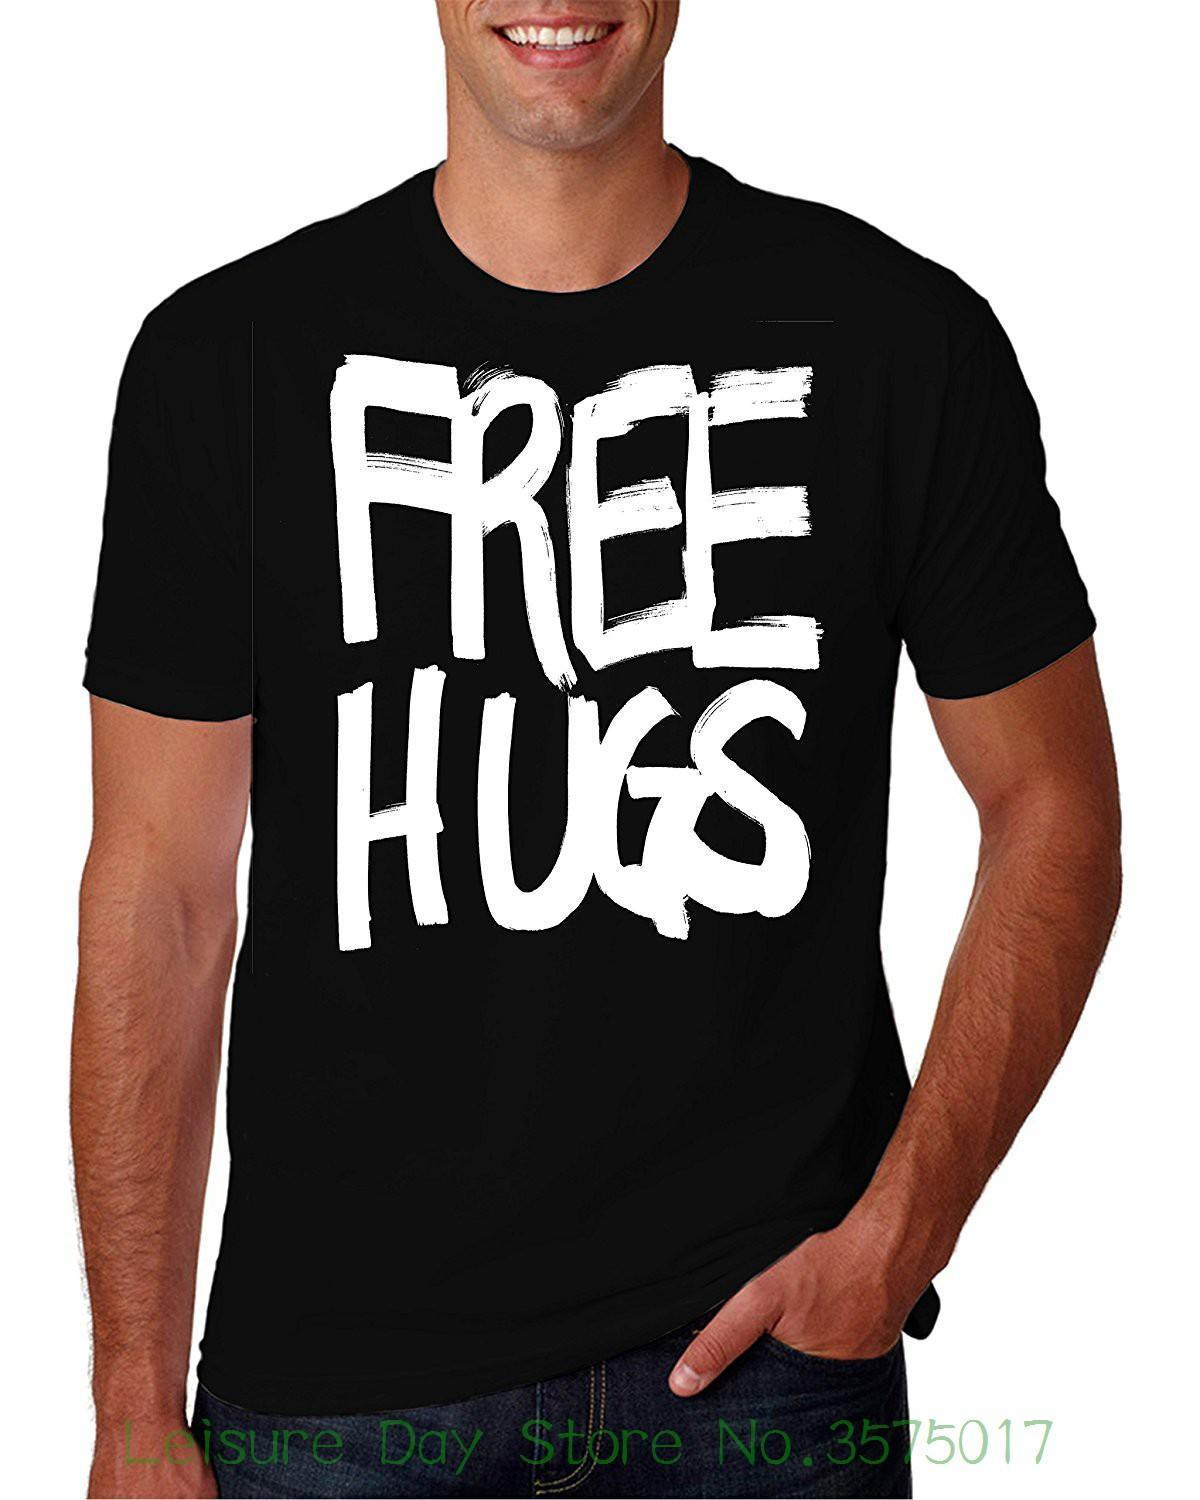 6c85b19455 Fashion Tshirt Hipster Cool Tops Adult Free Hugs Love Funny Novelty Parody T  Shirt Crazy Shirt Designs A Shirt A Day From Lijian56, $12.08| DHgate.Com